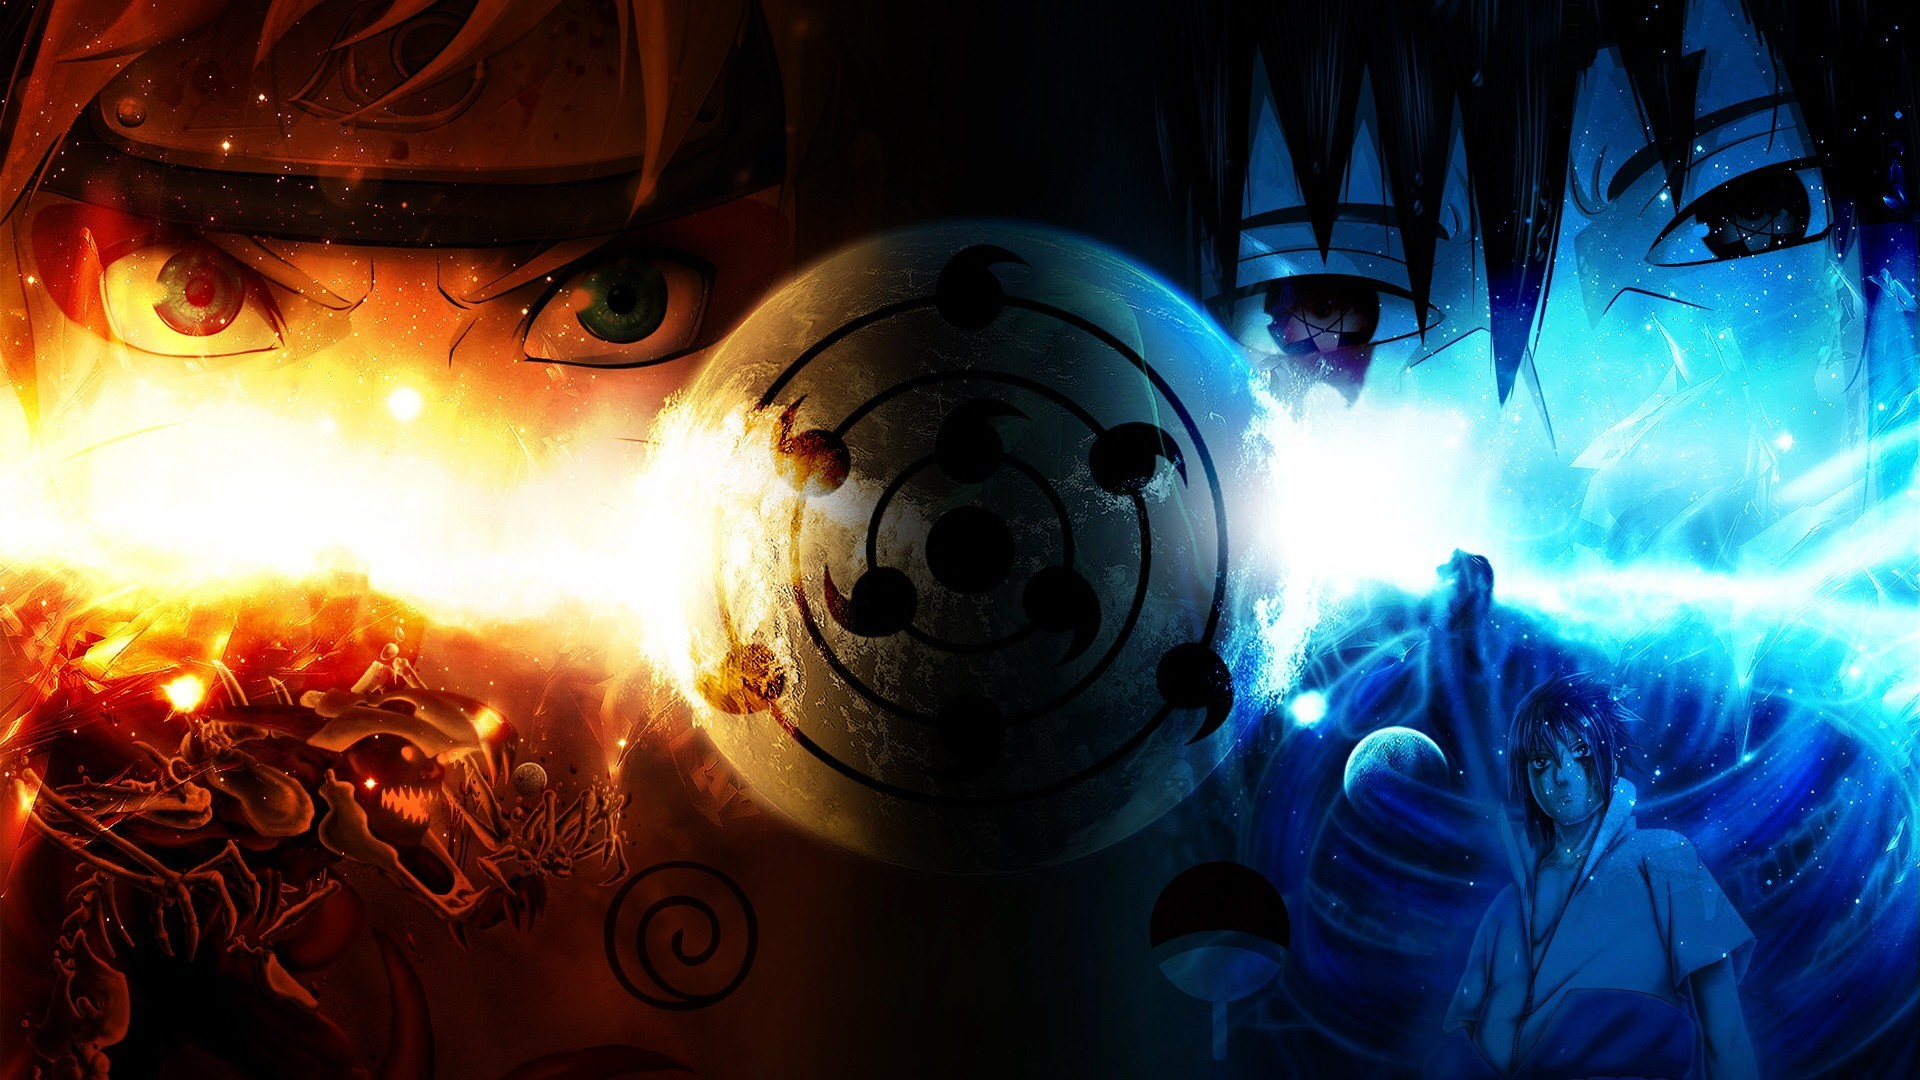 naruto hd wallpapers